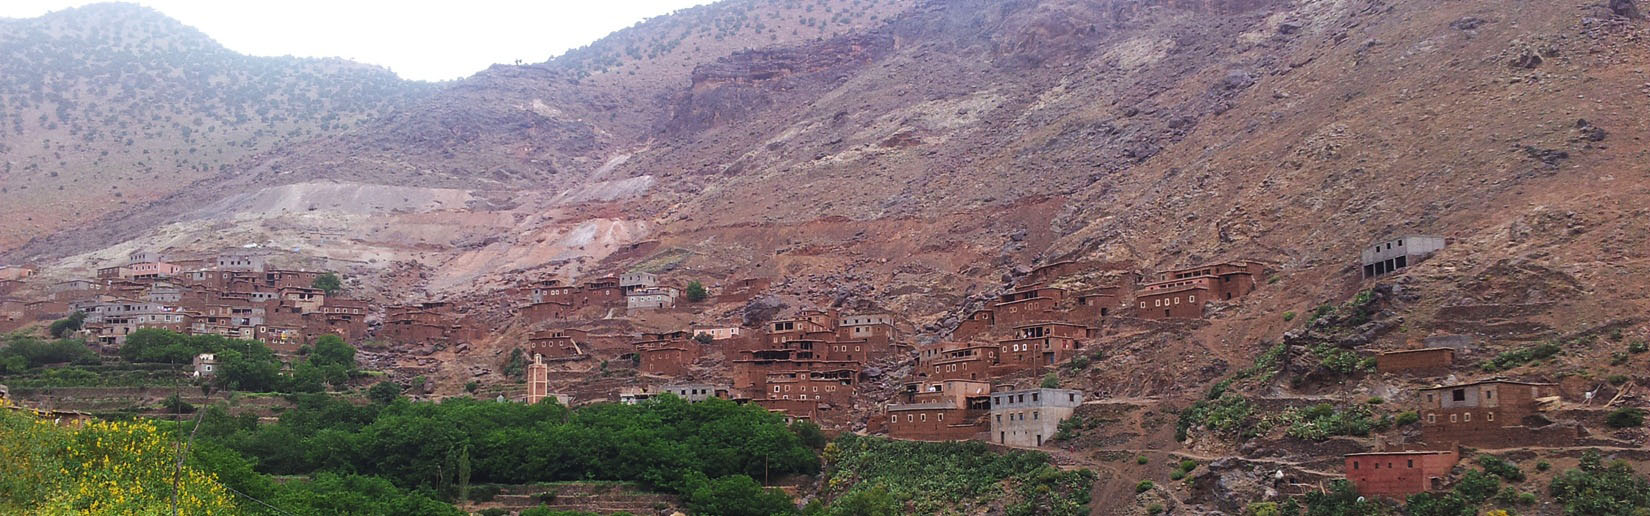 Berber Villages & Culture Treks